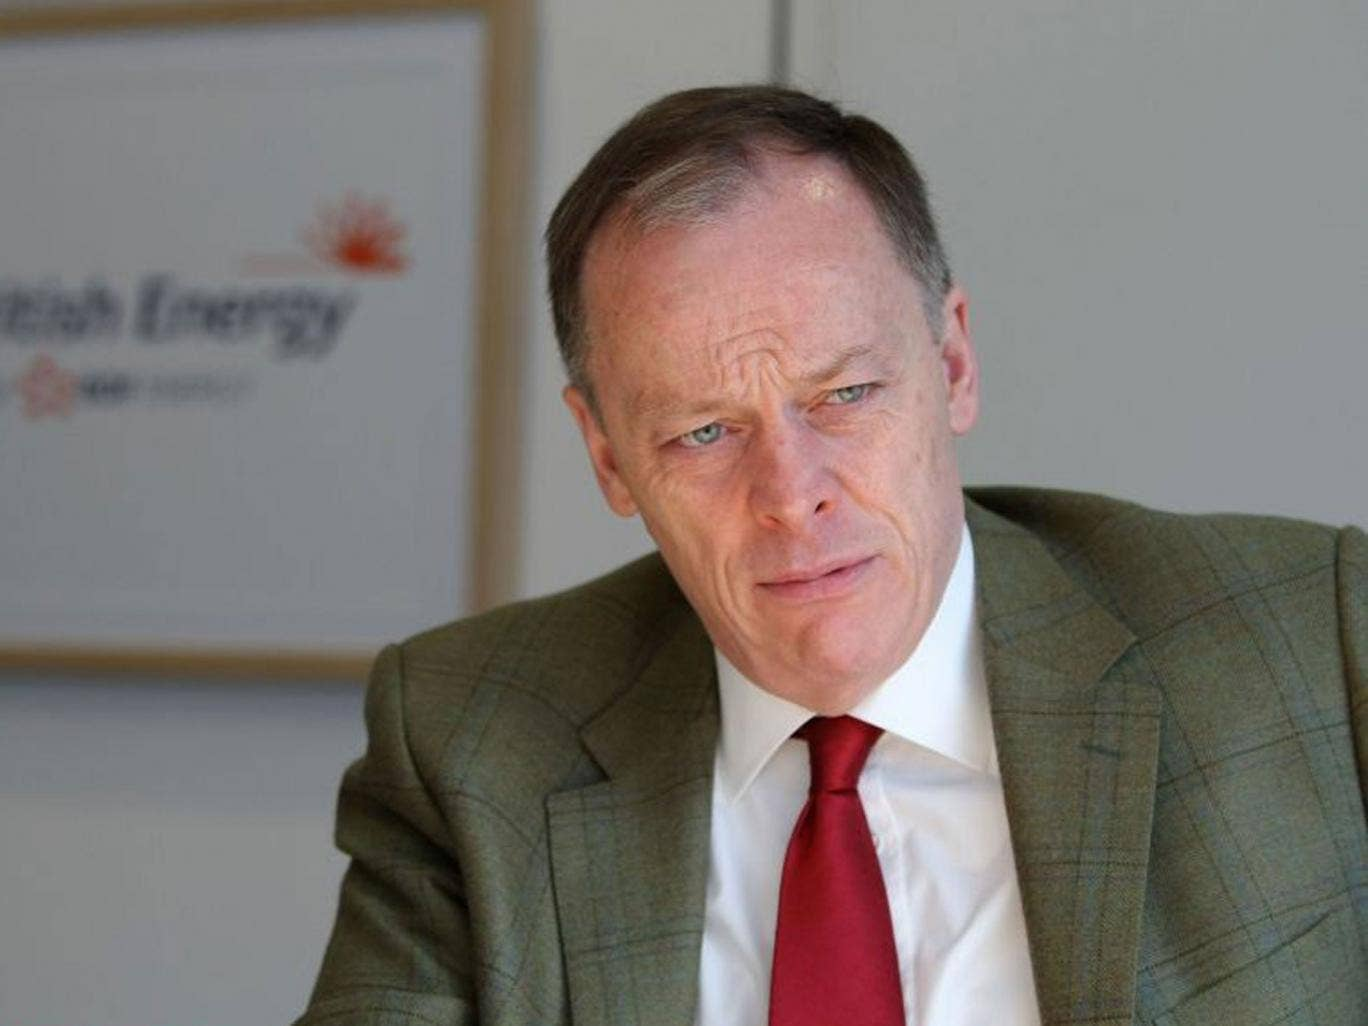 Vincent de Rivaz admitted that the energy industry faced a 'crisis of trust'